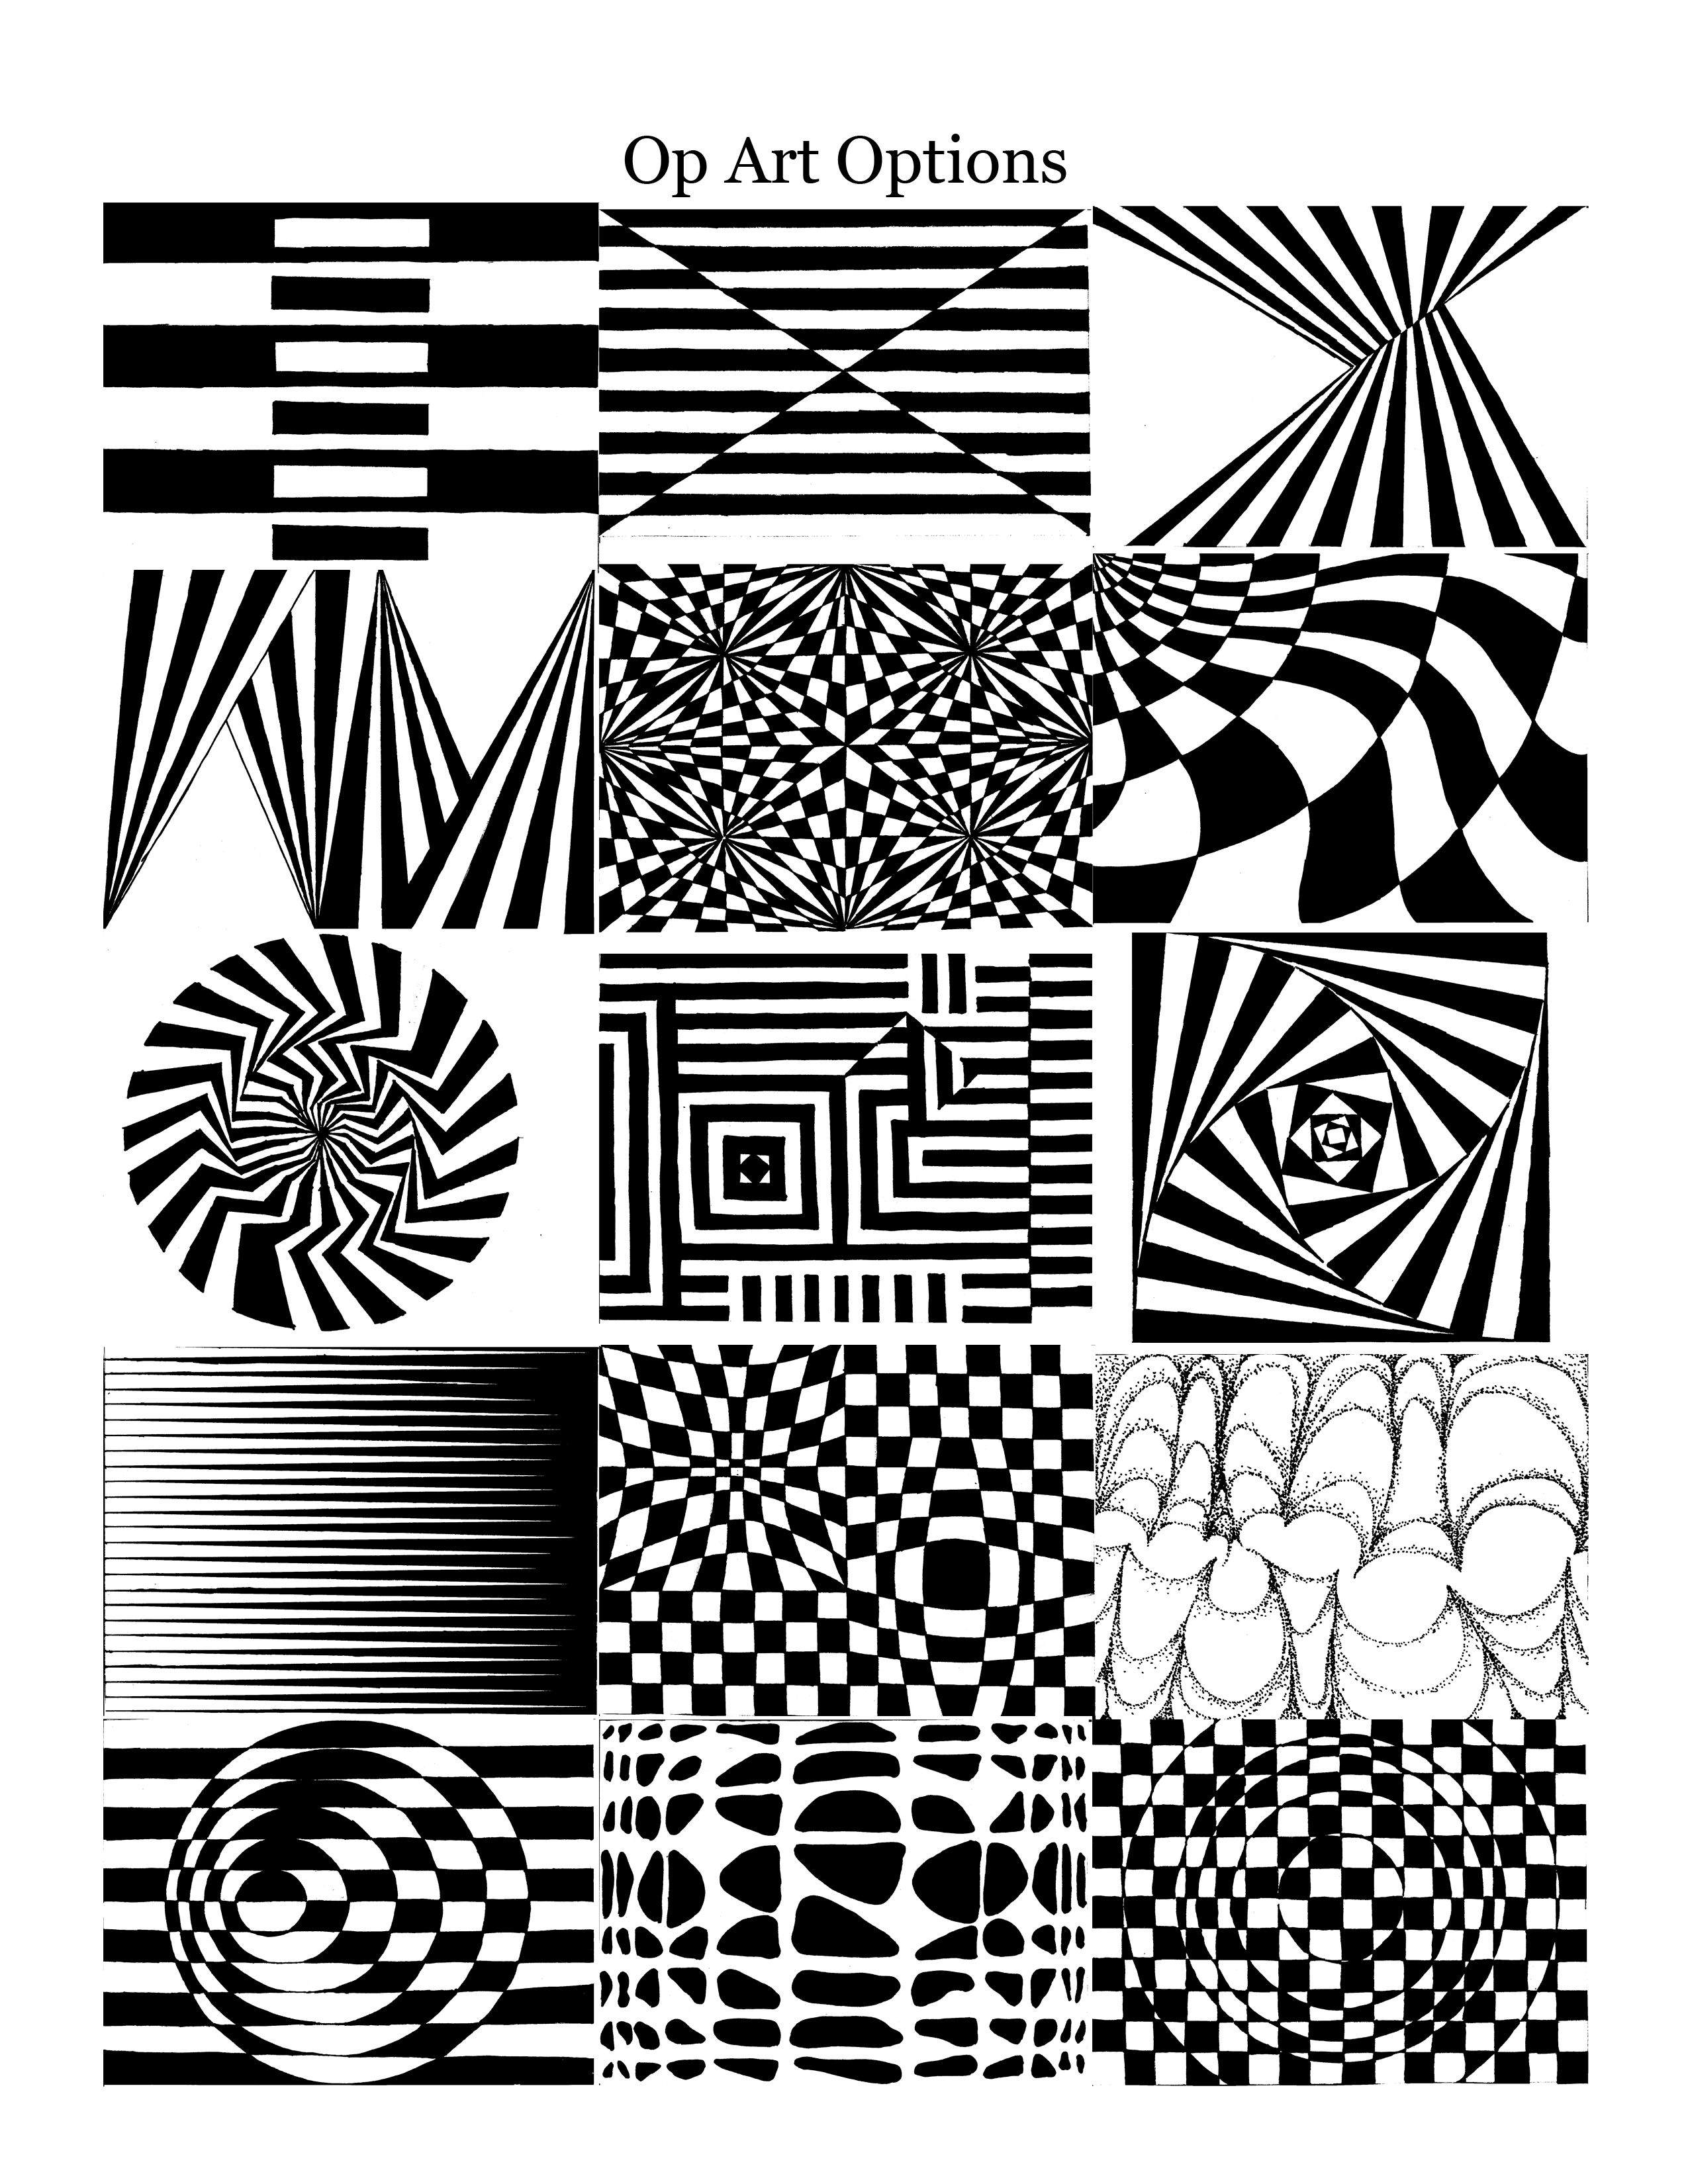 Op Art Worksheet For Students